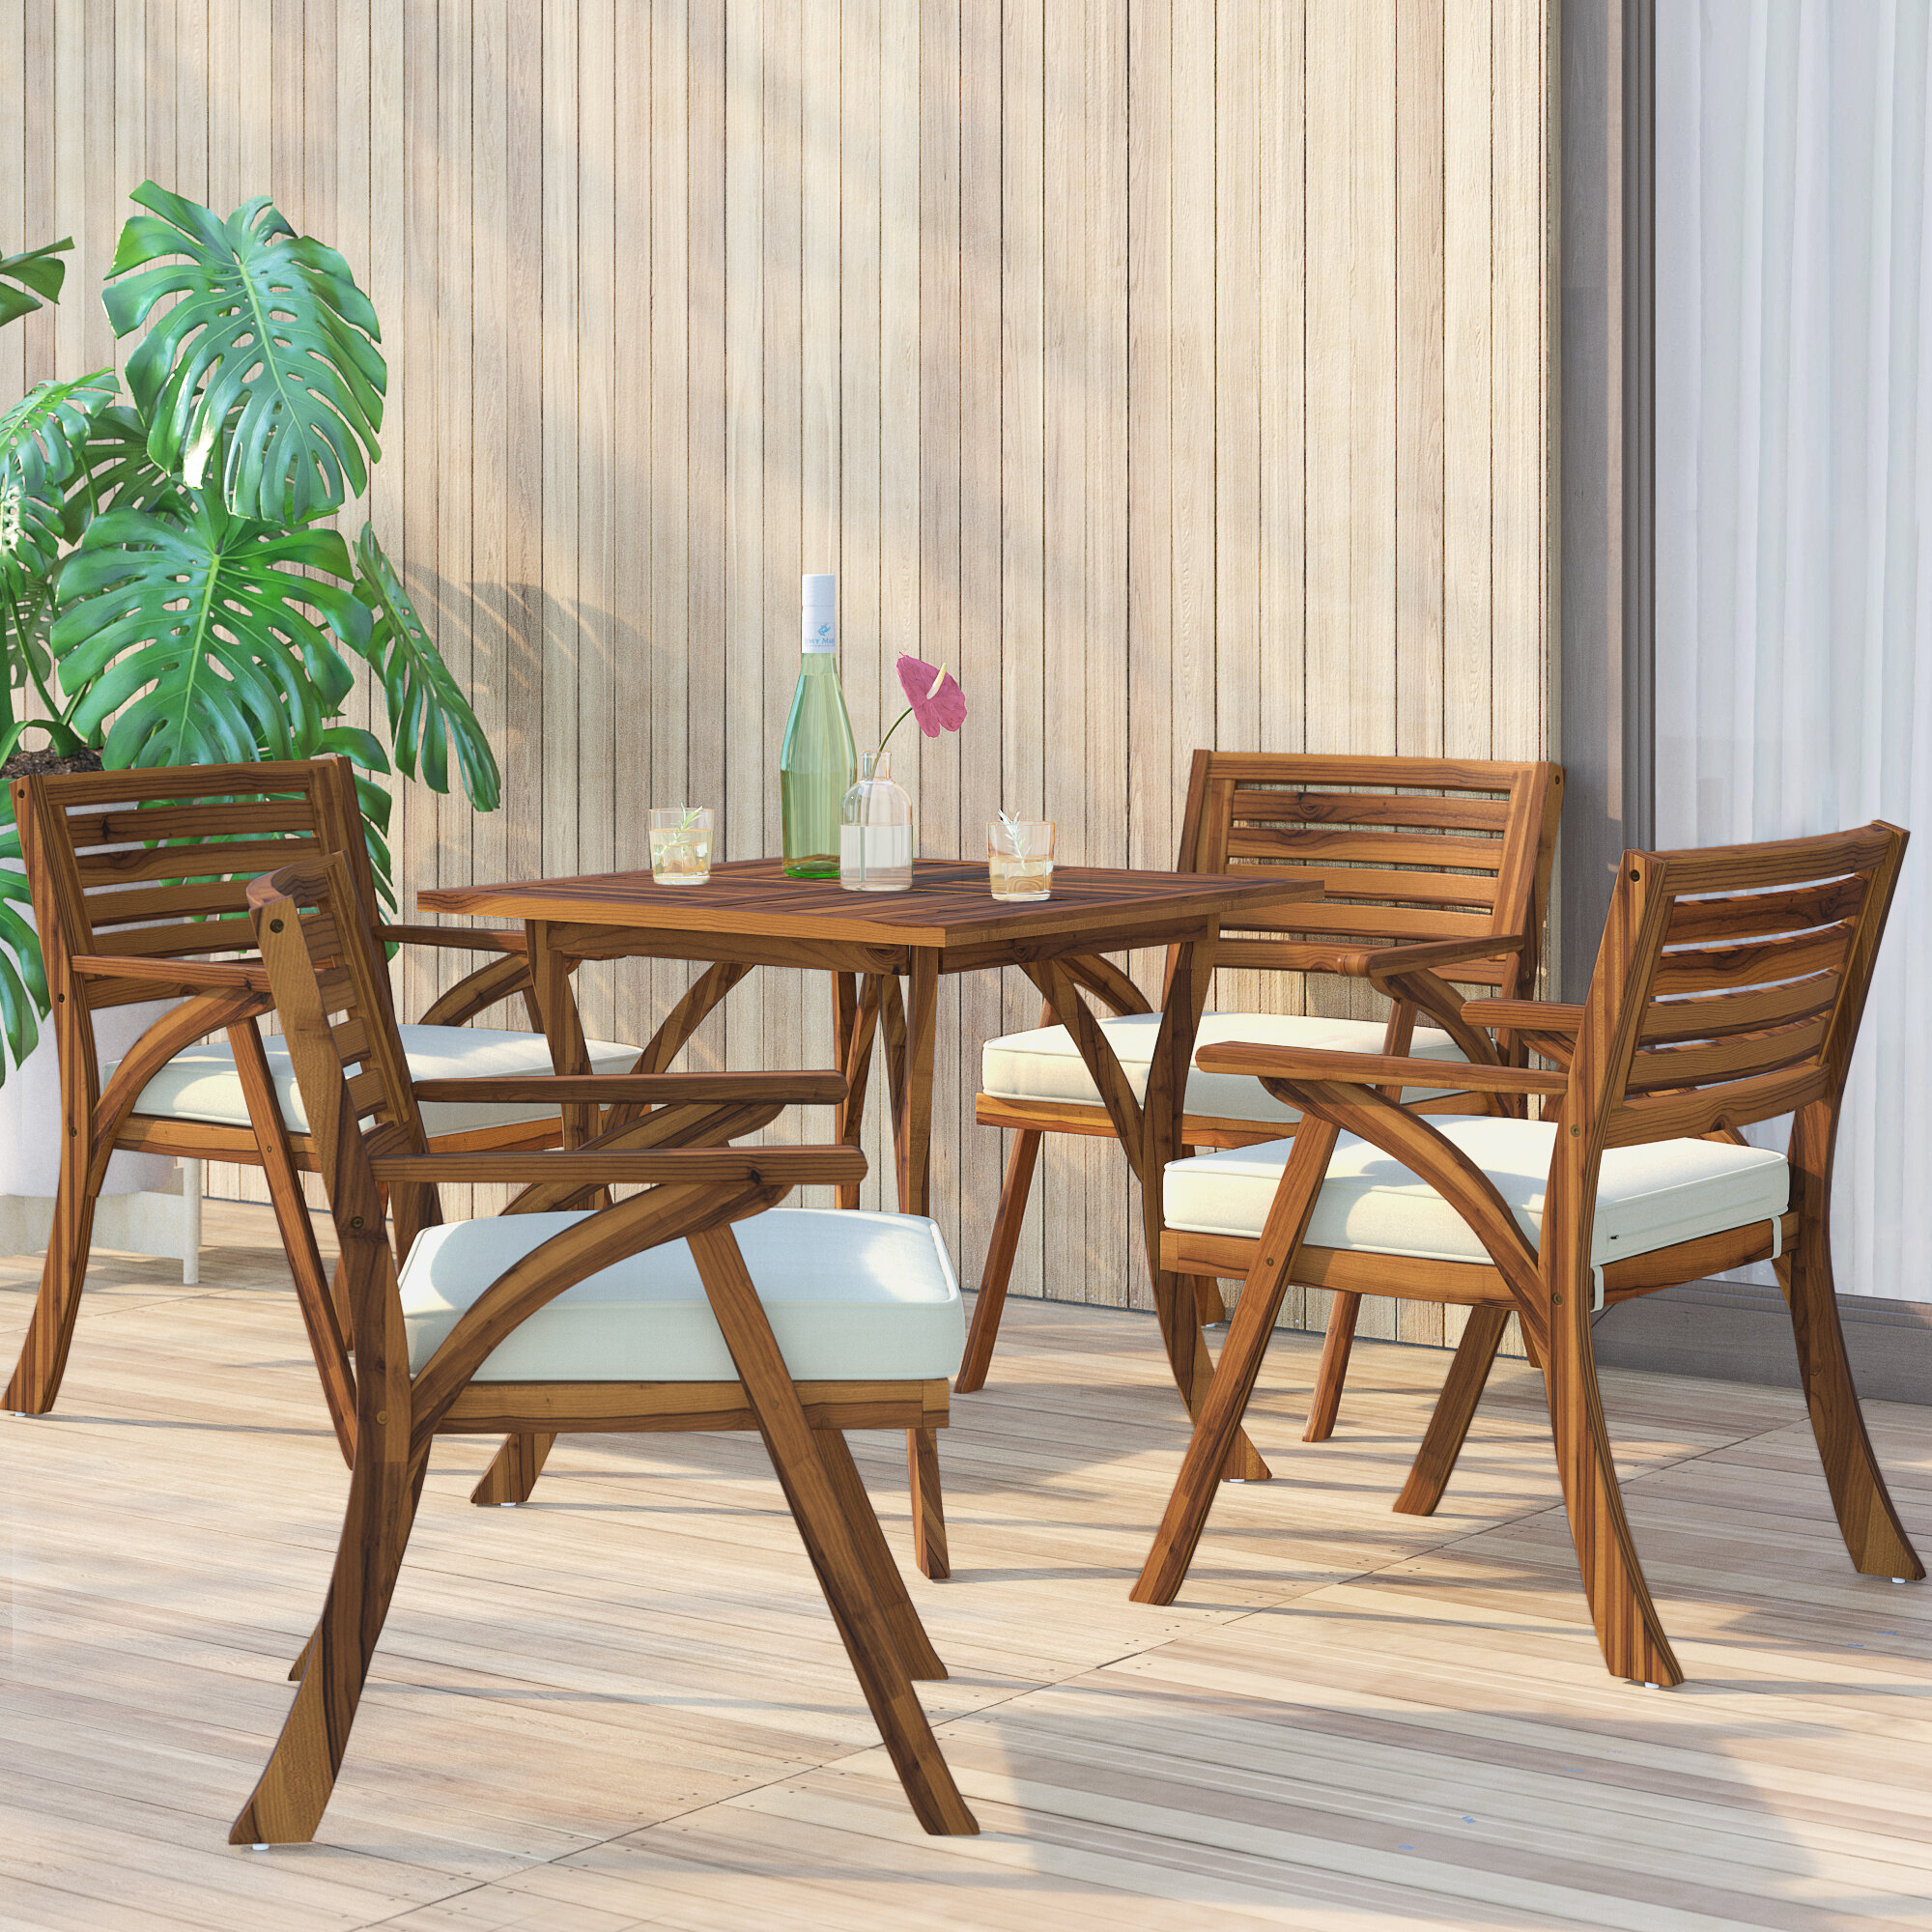 Mercury row ajax 5 piece teak dining set with cushions reviews wayfair